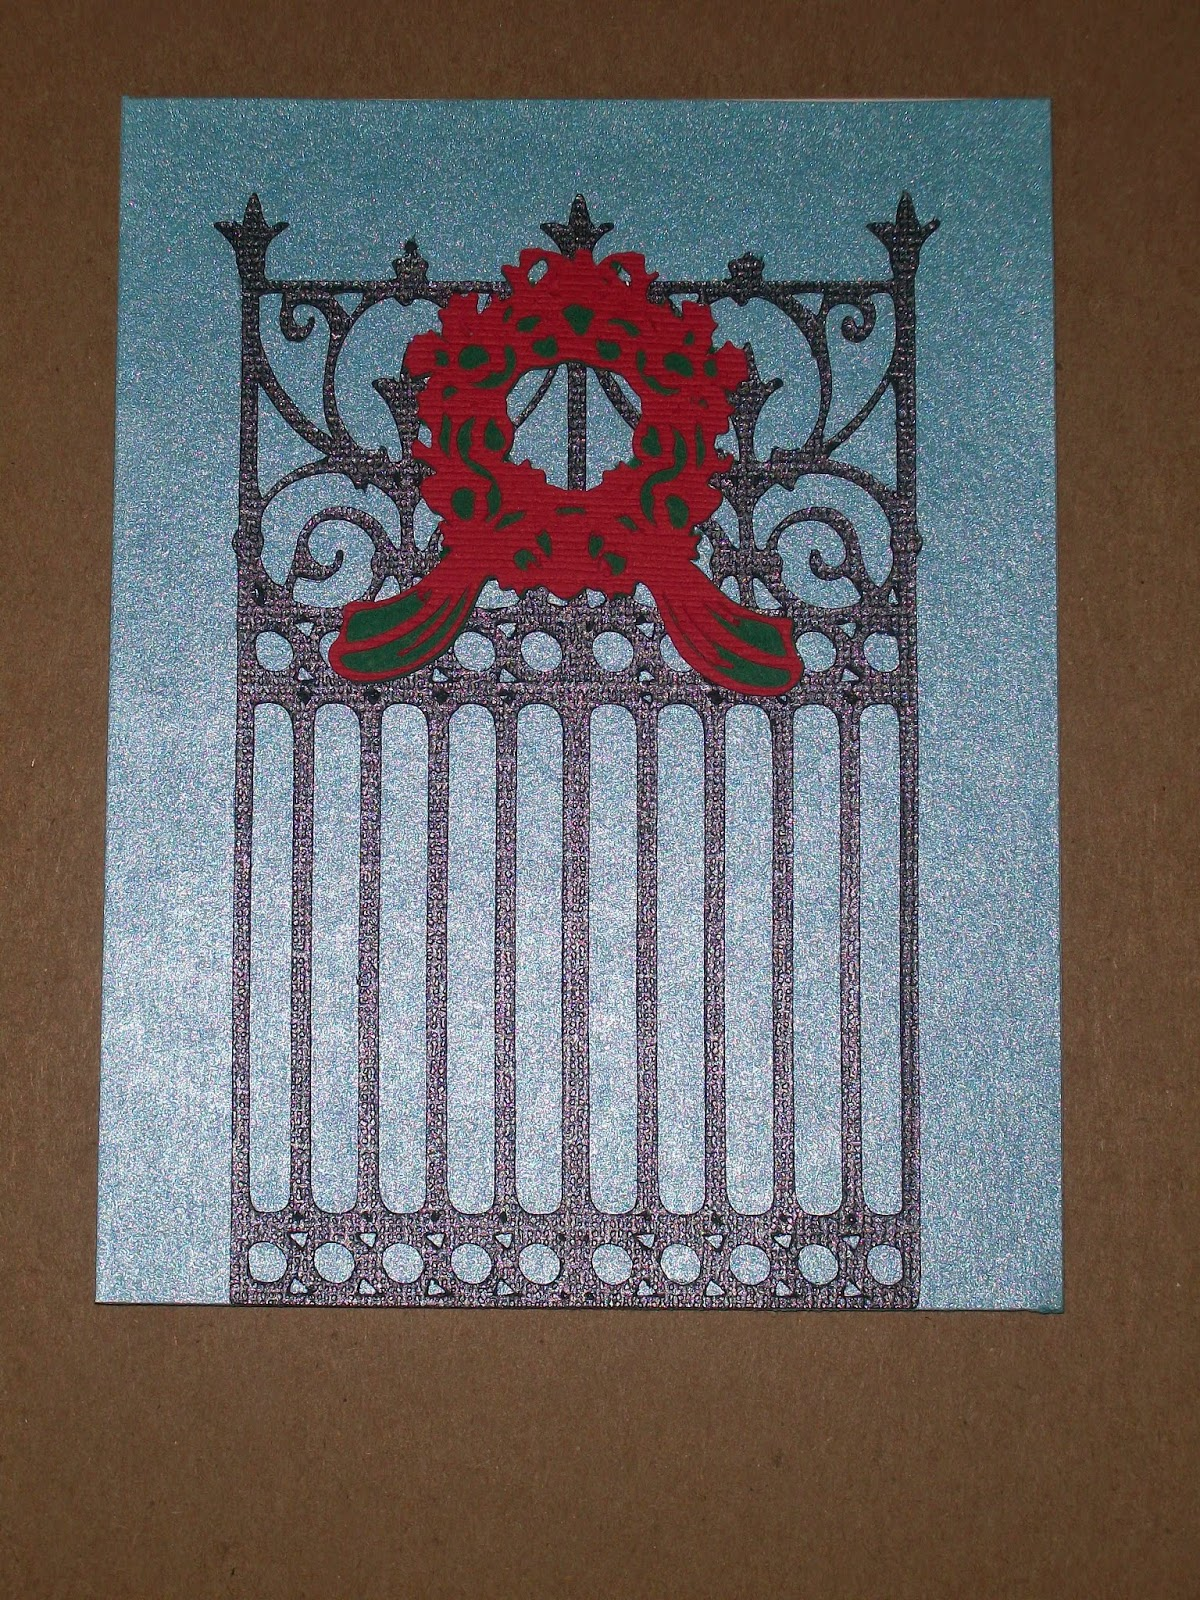 DIY: Decorative Gate Christmas Card